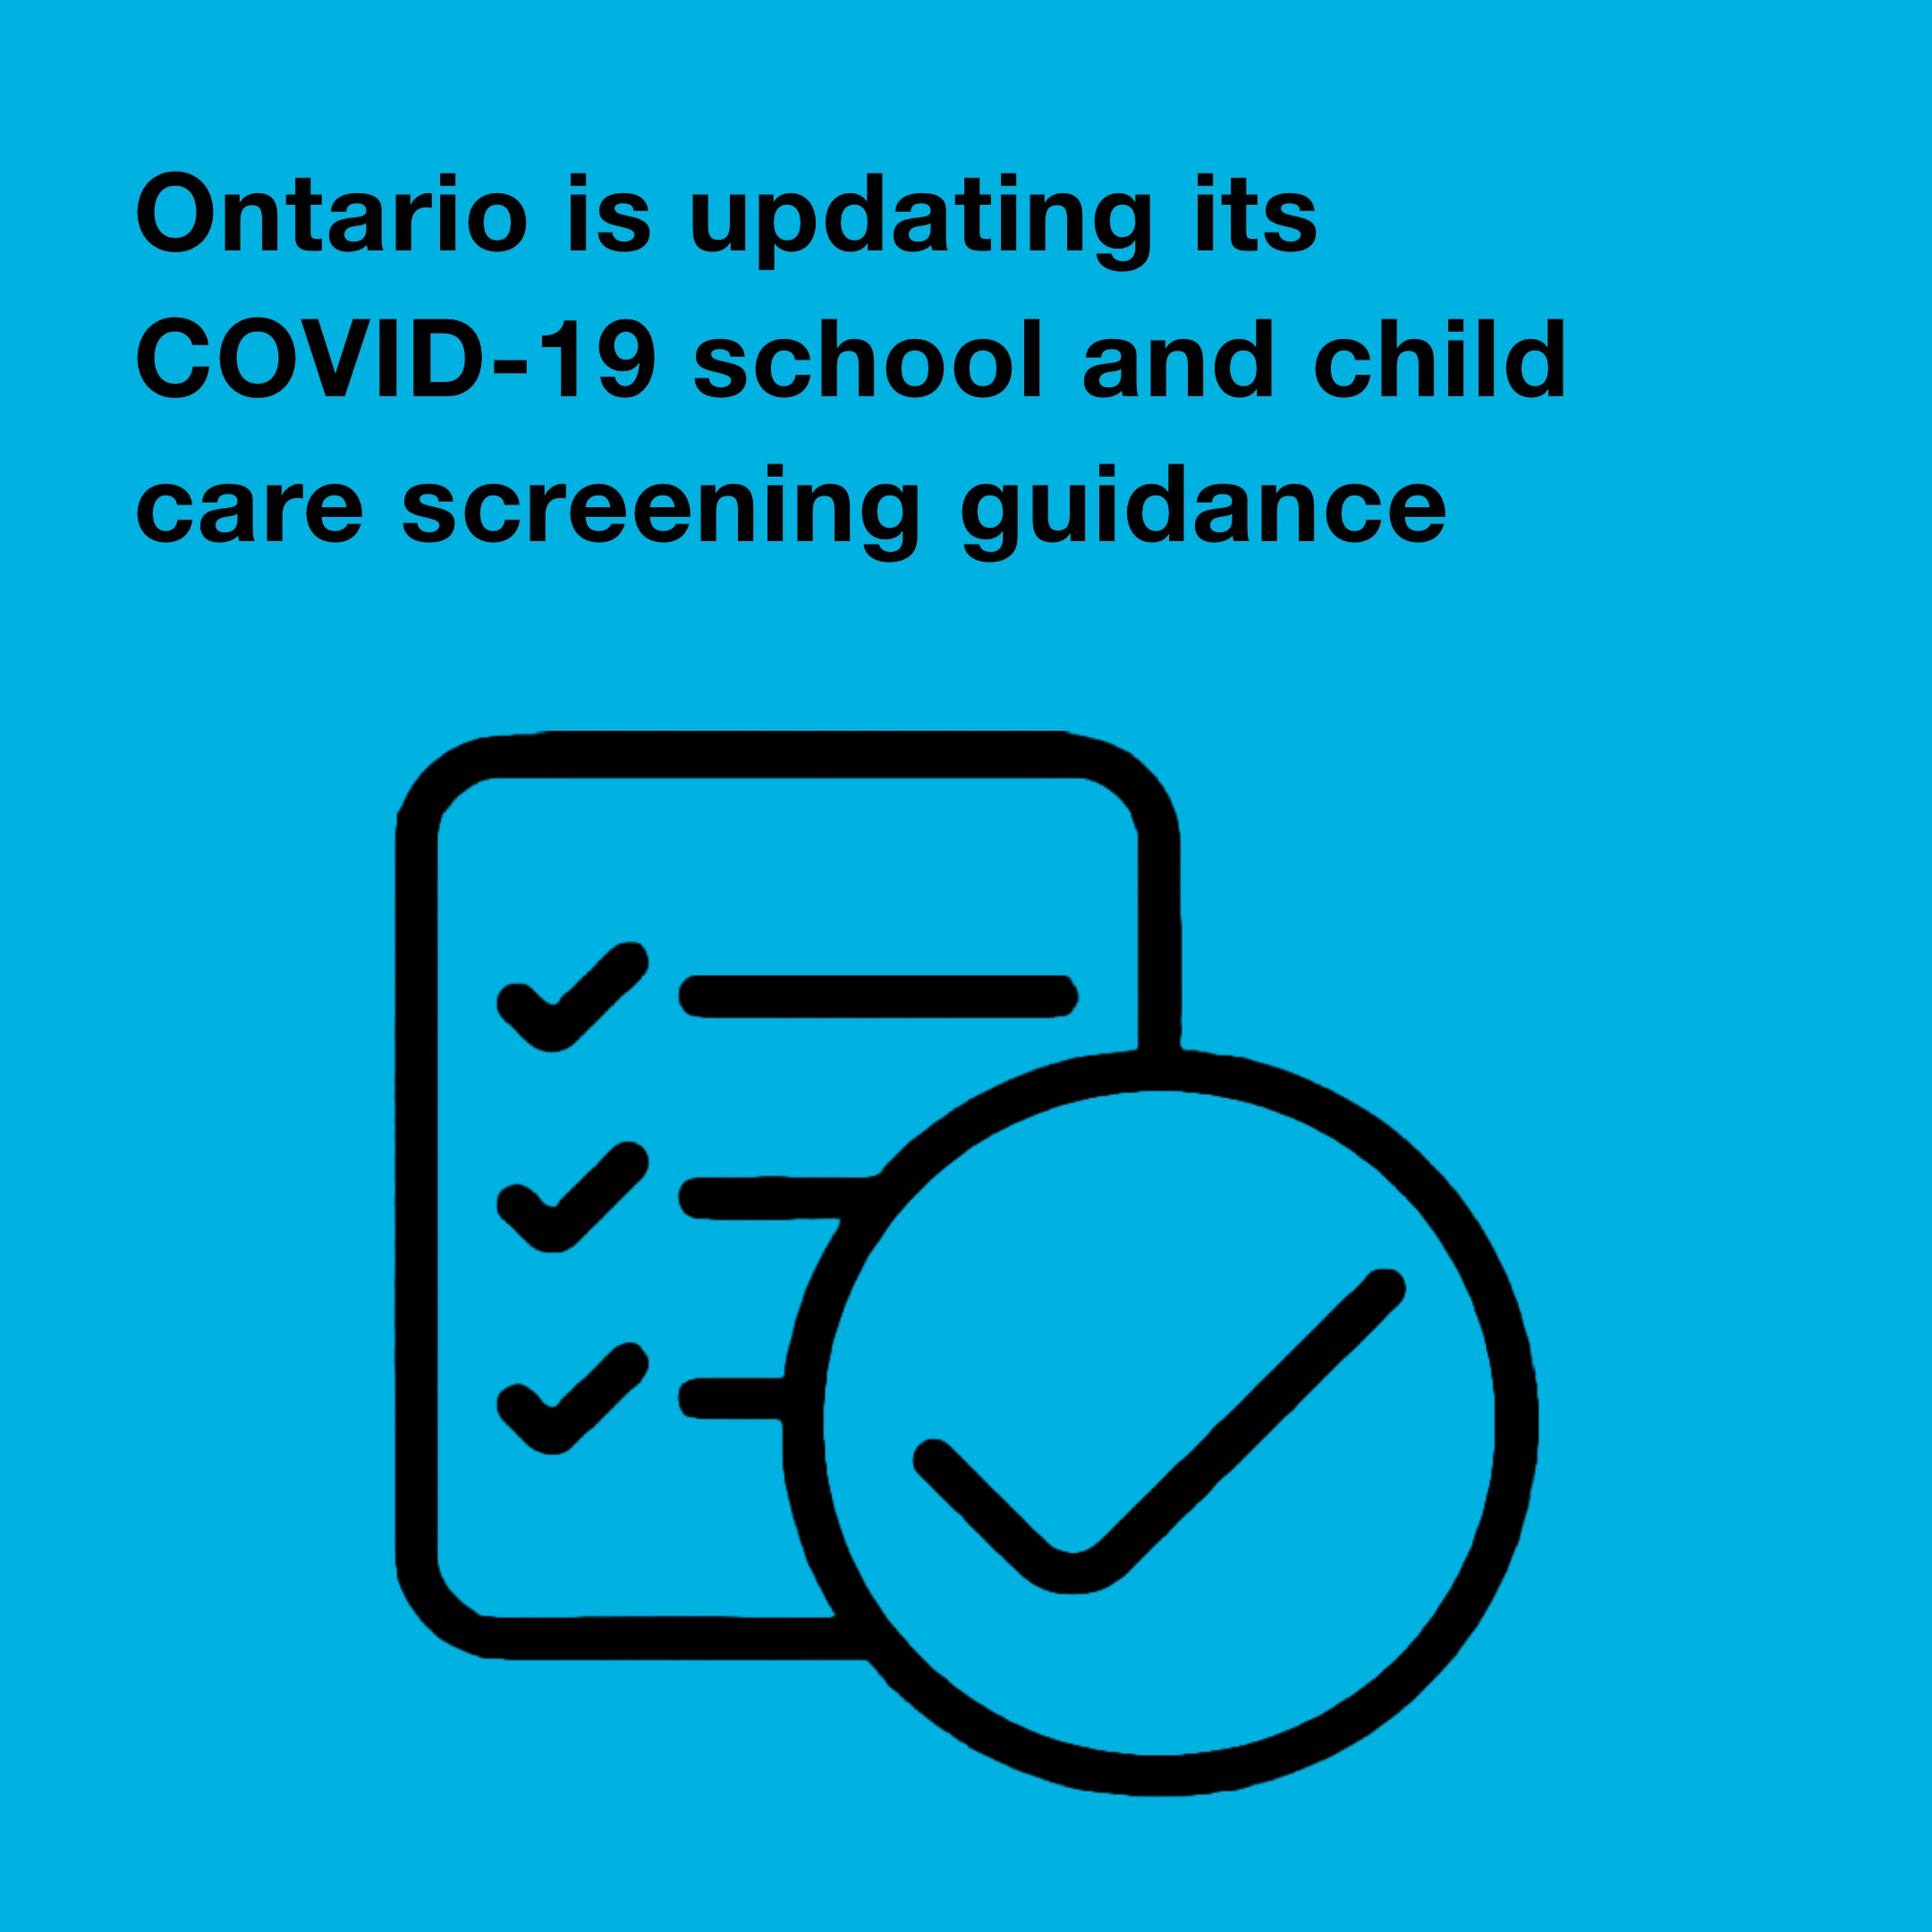 Updating Testing Guidelines for Schools and Child Care - October 1/20